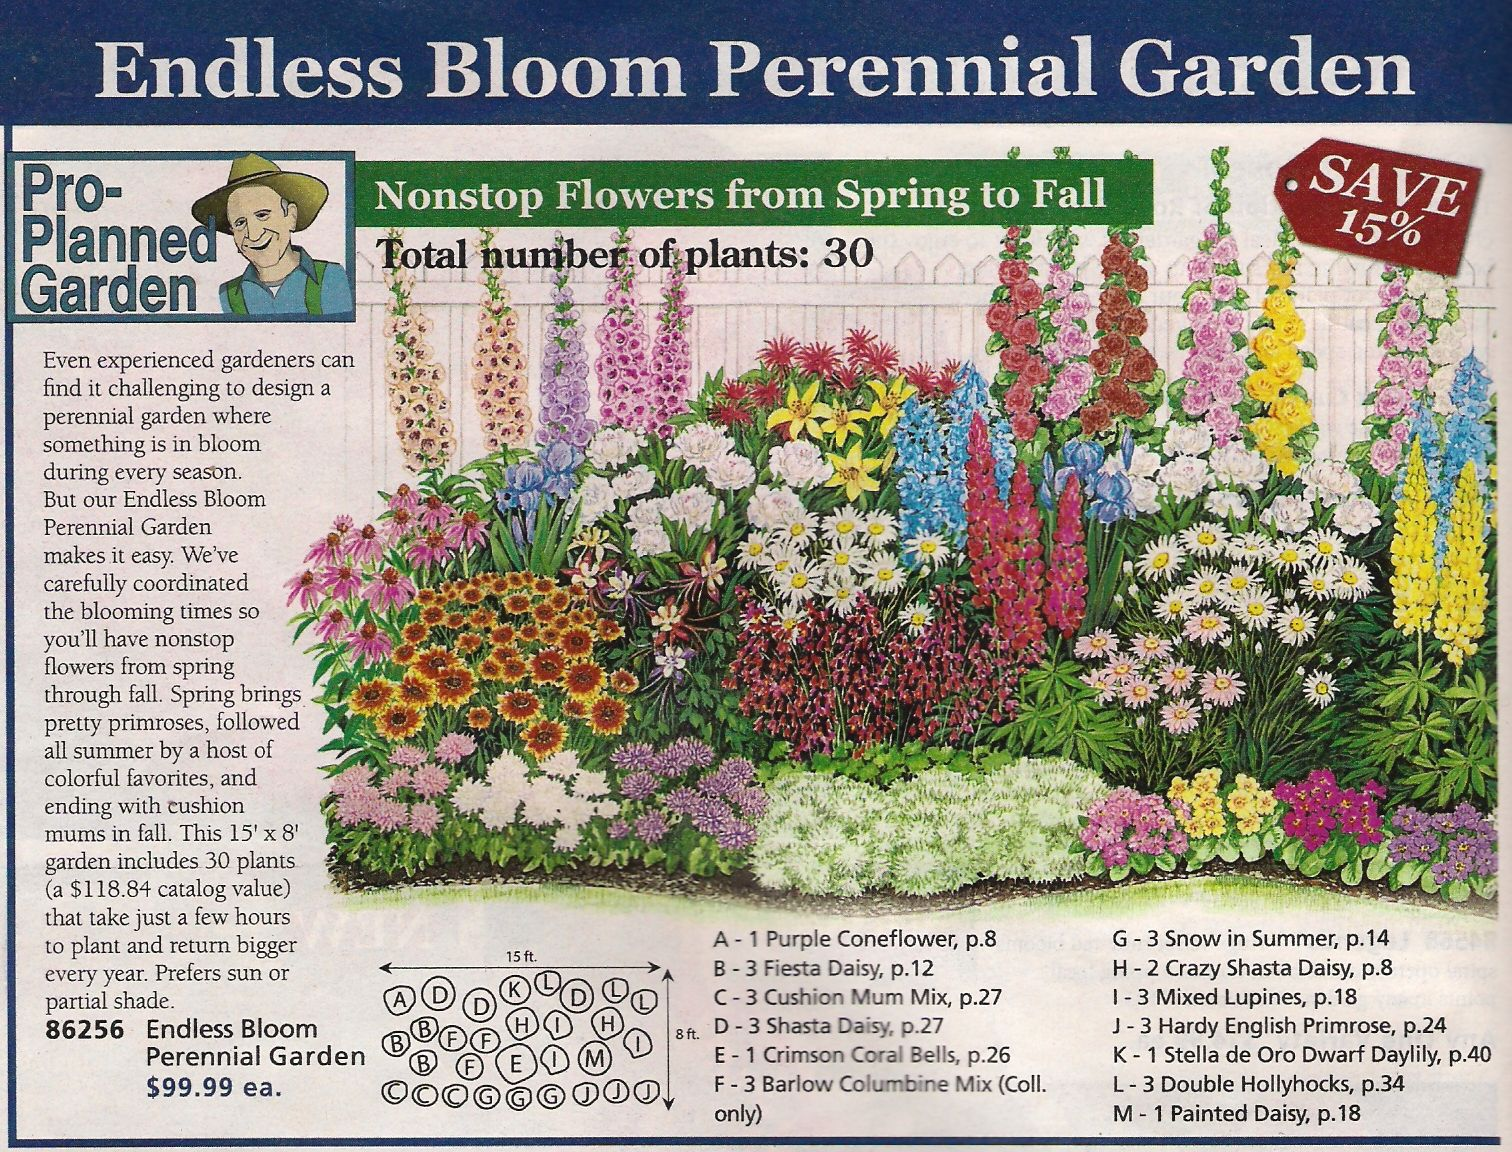 Perennial Bed Plan From Michigan Bulb Co., West Garden